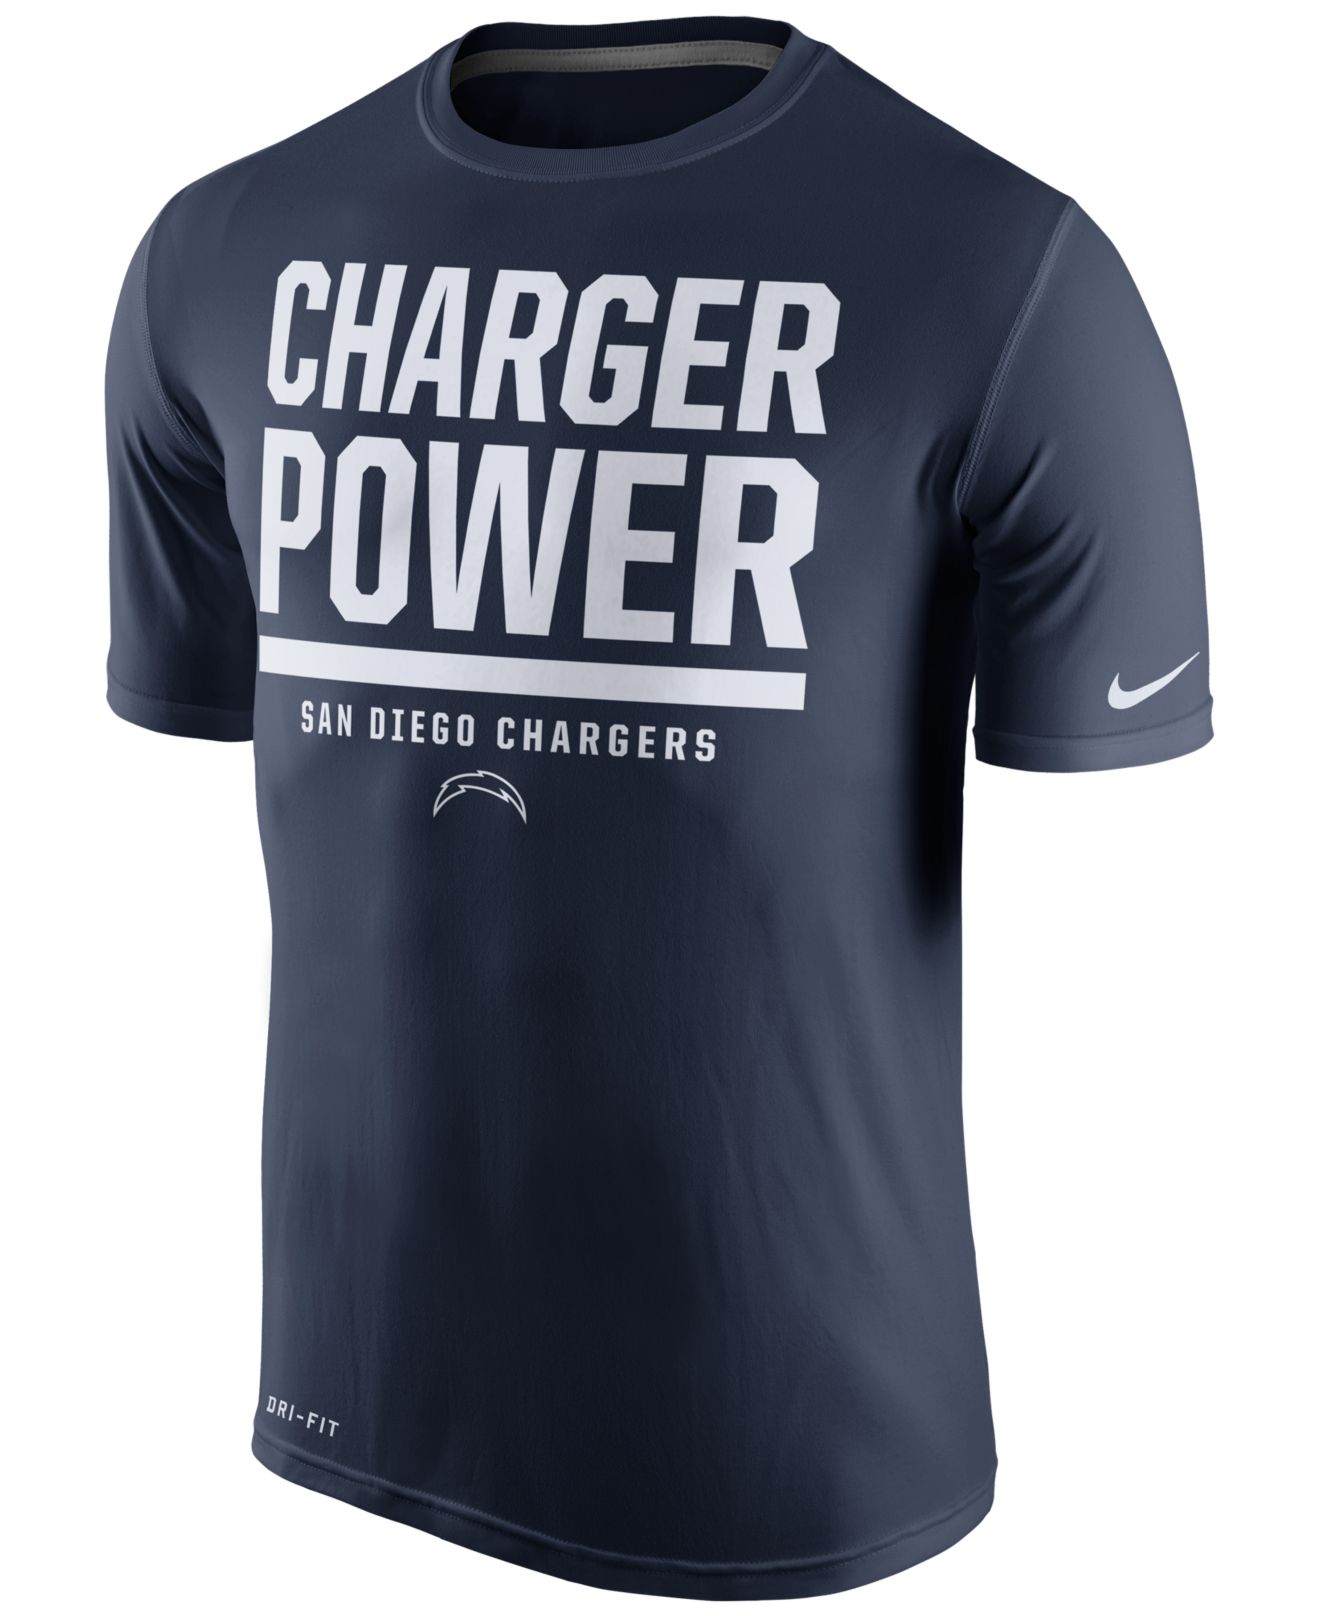 San Diego Chargers Dress: Nike Men's San Diego Chargers Local Legend Verbiage